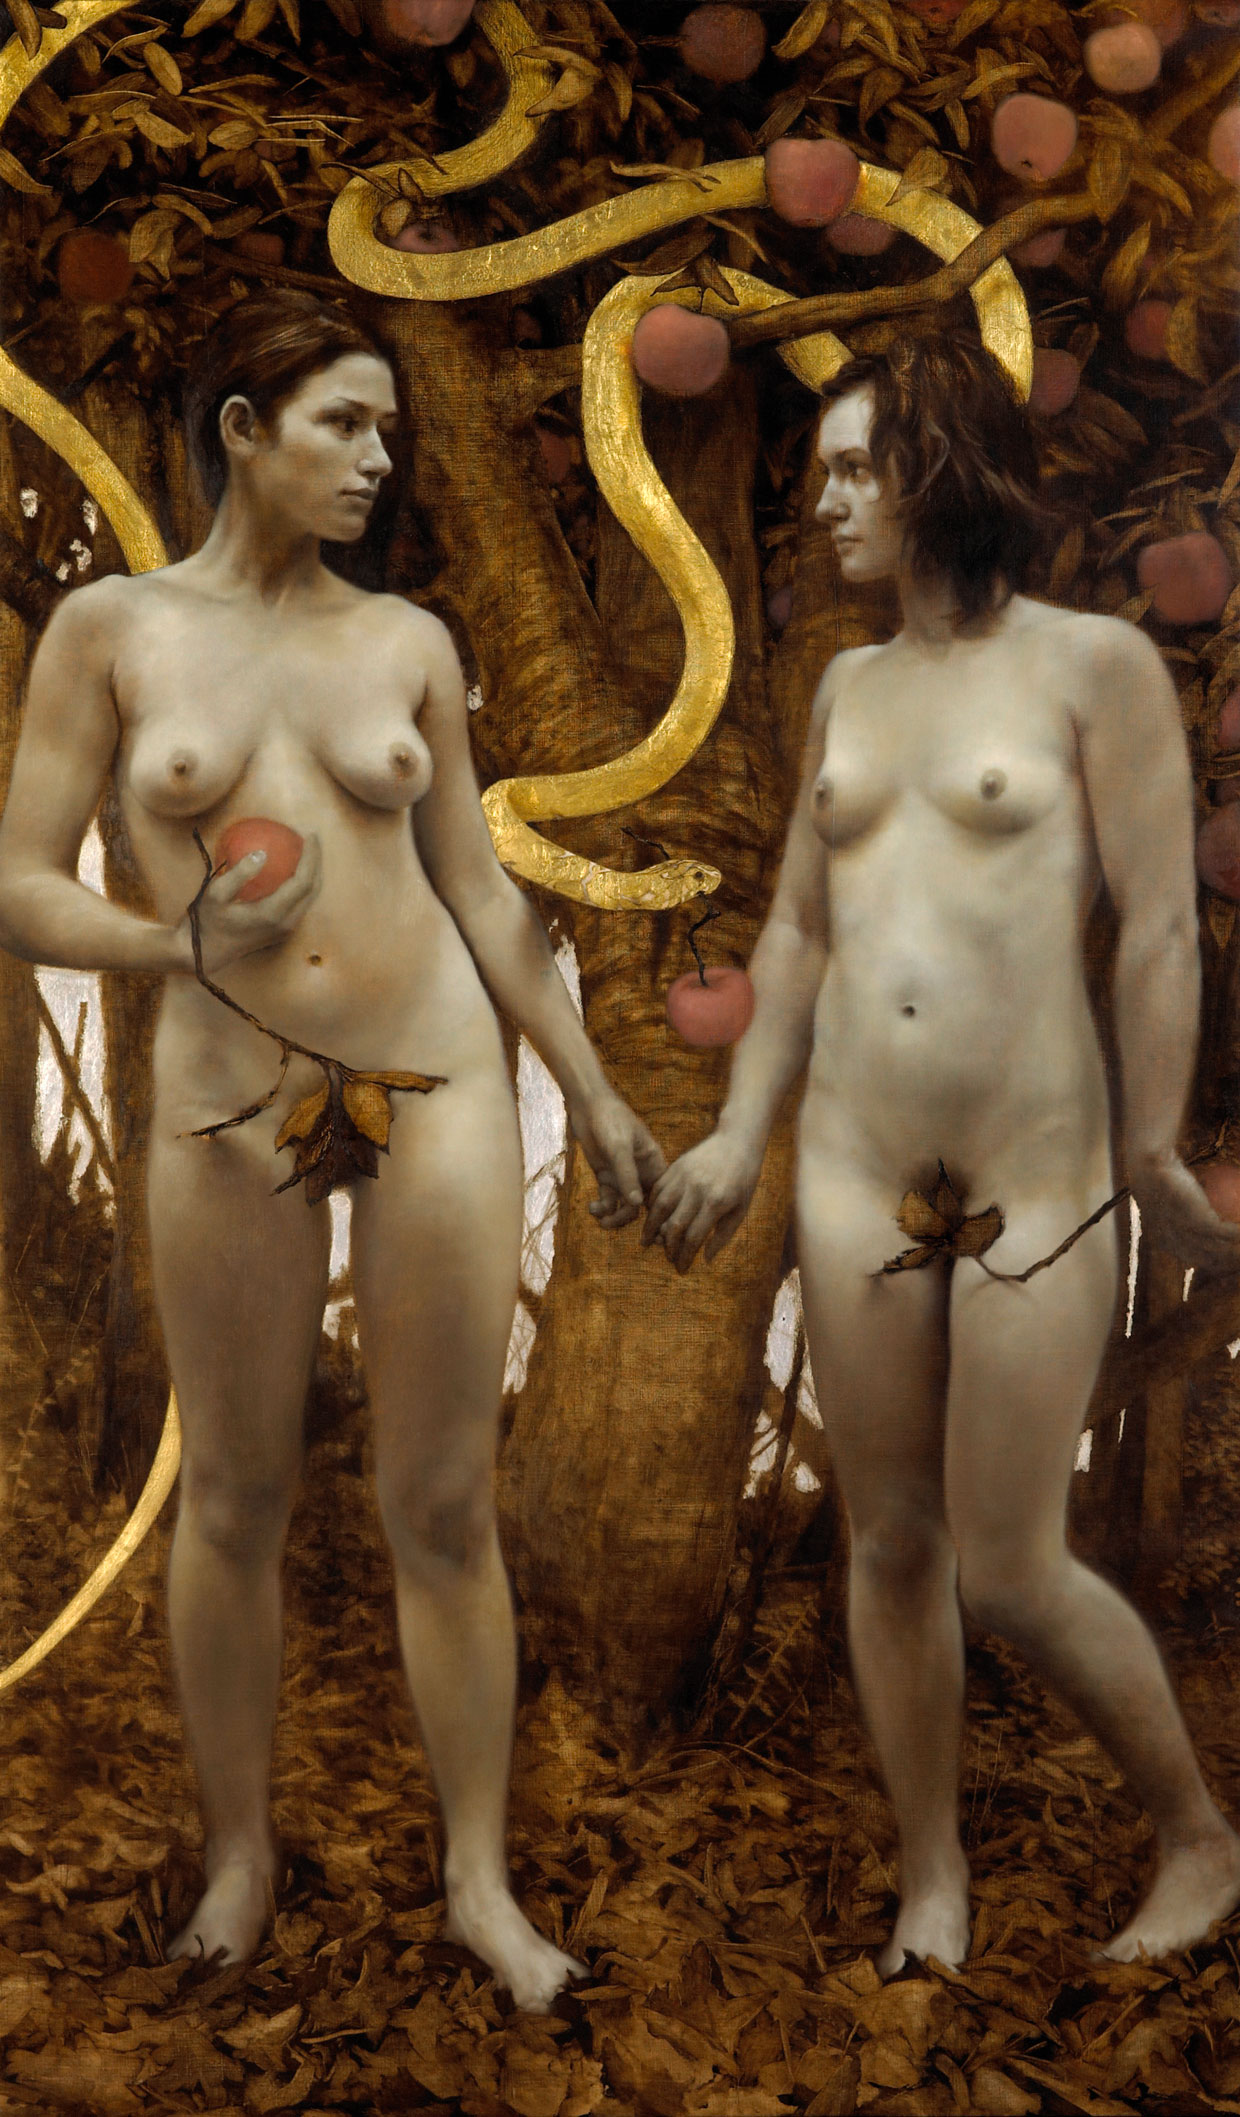 The Proposition , 2008-09. Oil, gold, and silver on linen. 52 x 31 inches. Private collection.